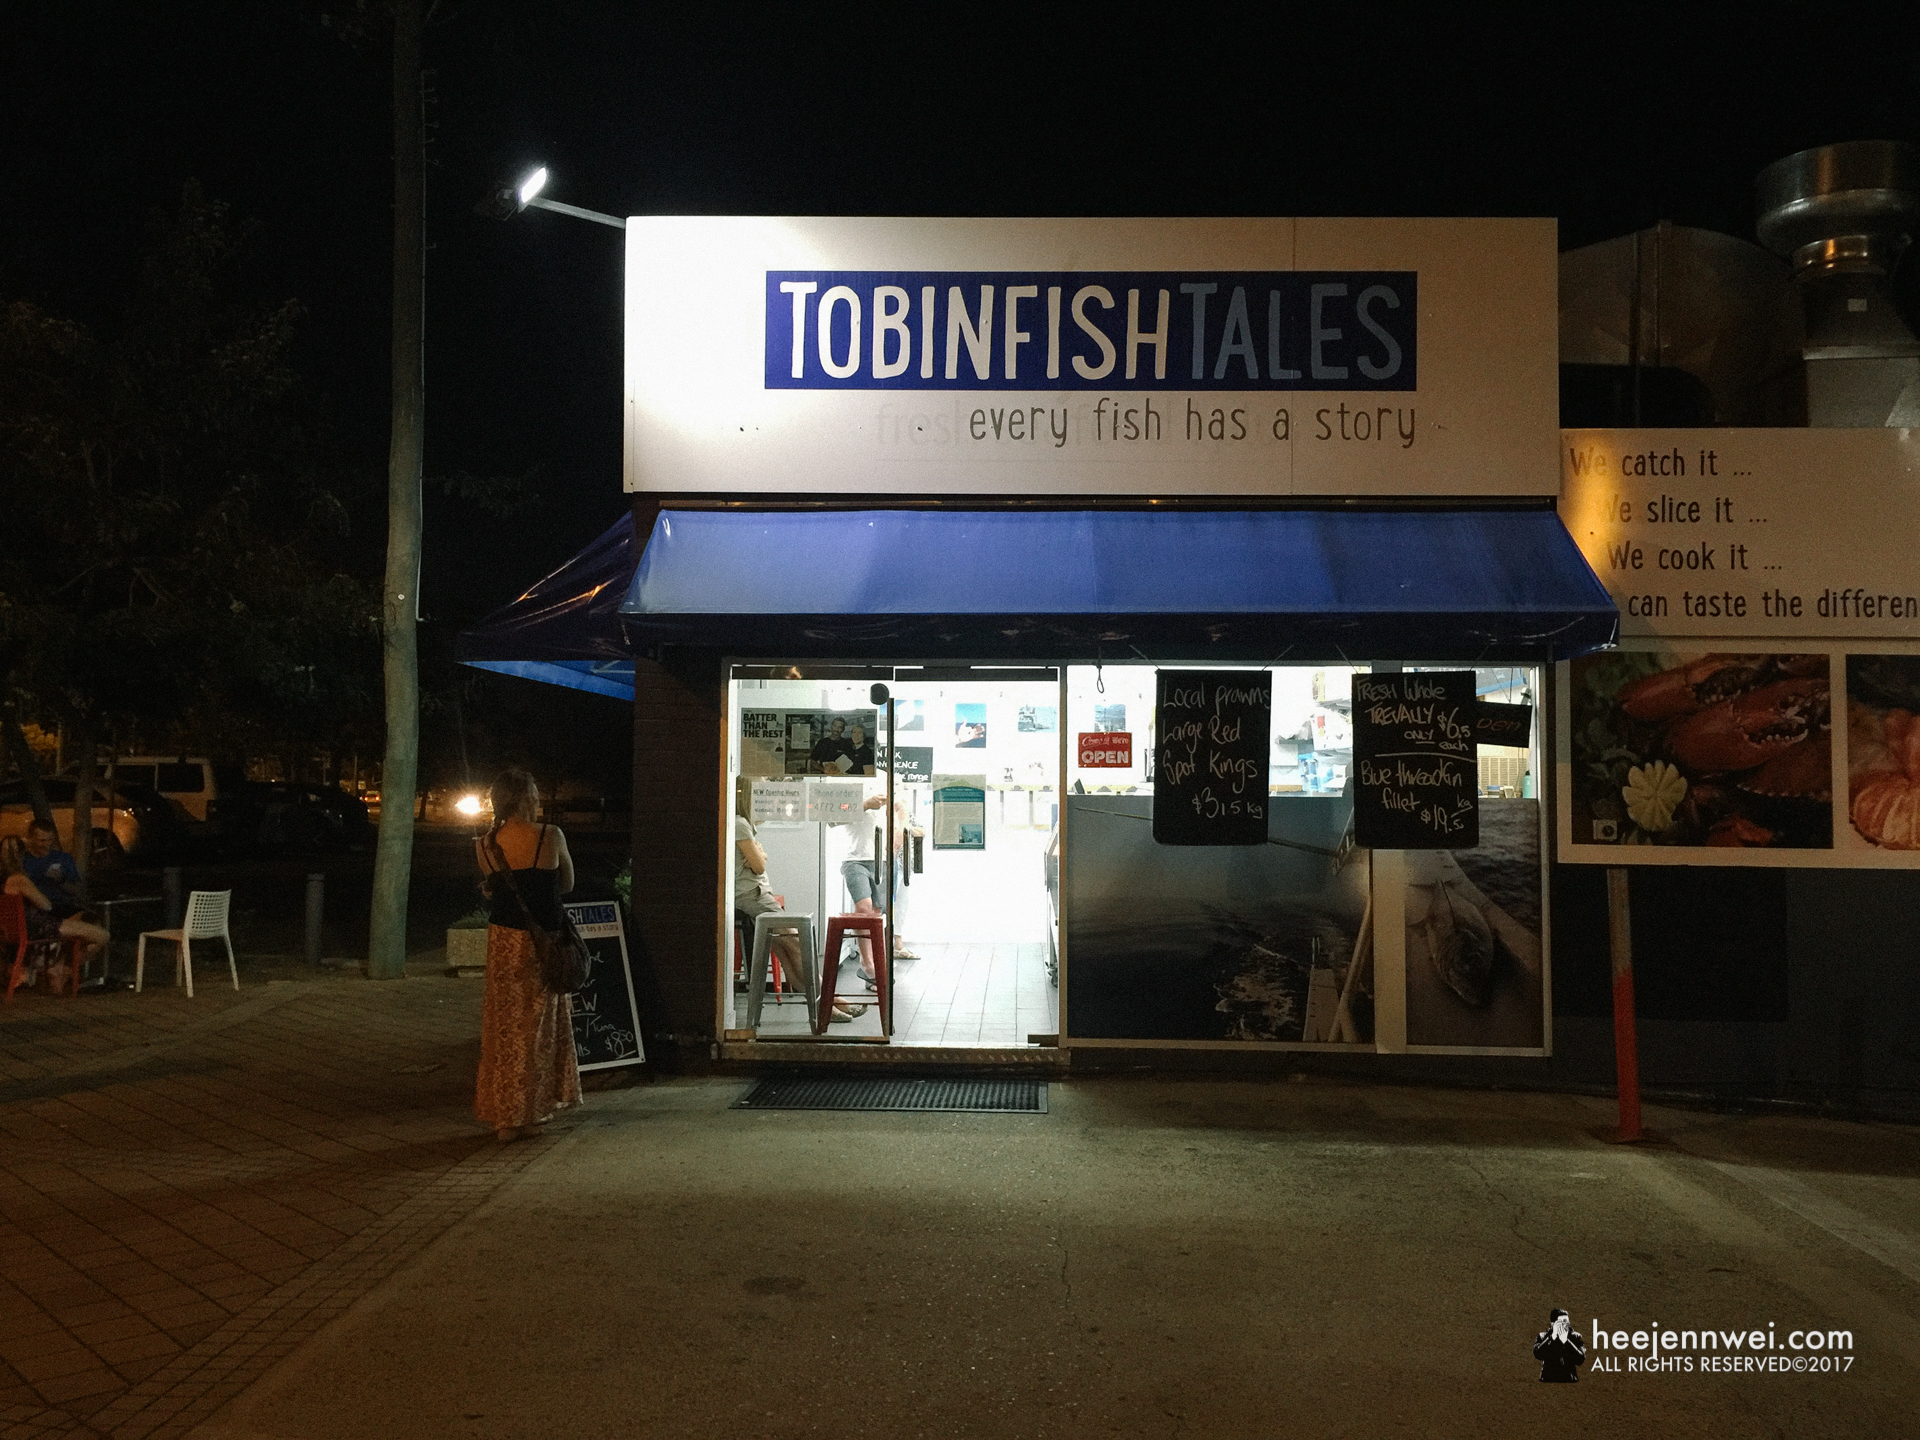 Hands down, one of the best Fish and Chips i've ever had, Tobin Fish Tales. (iPhone photo)